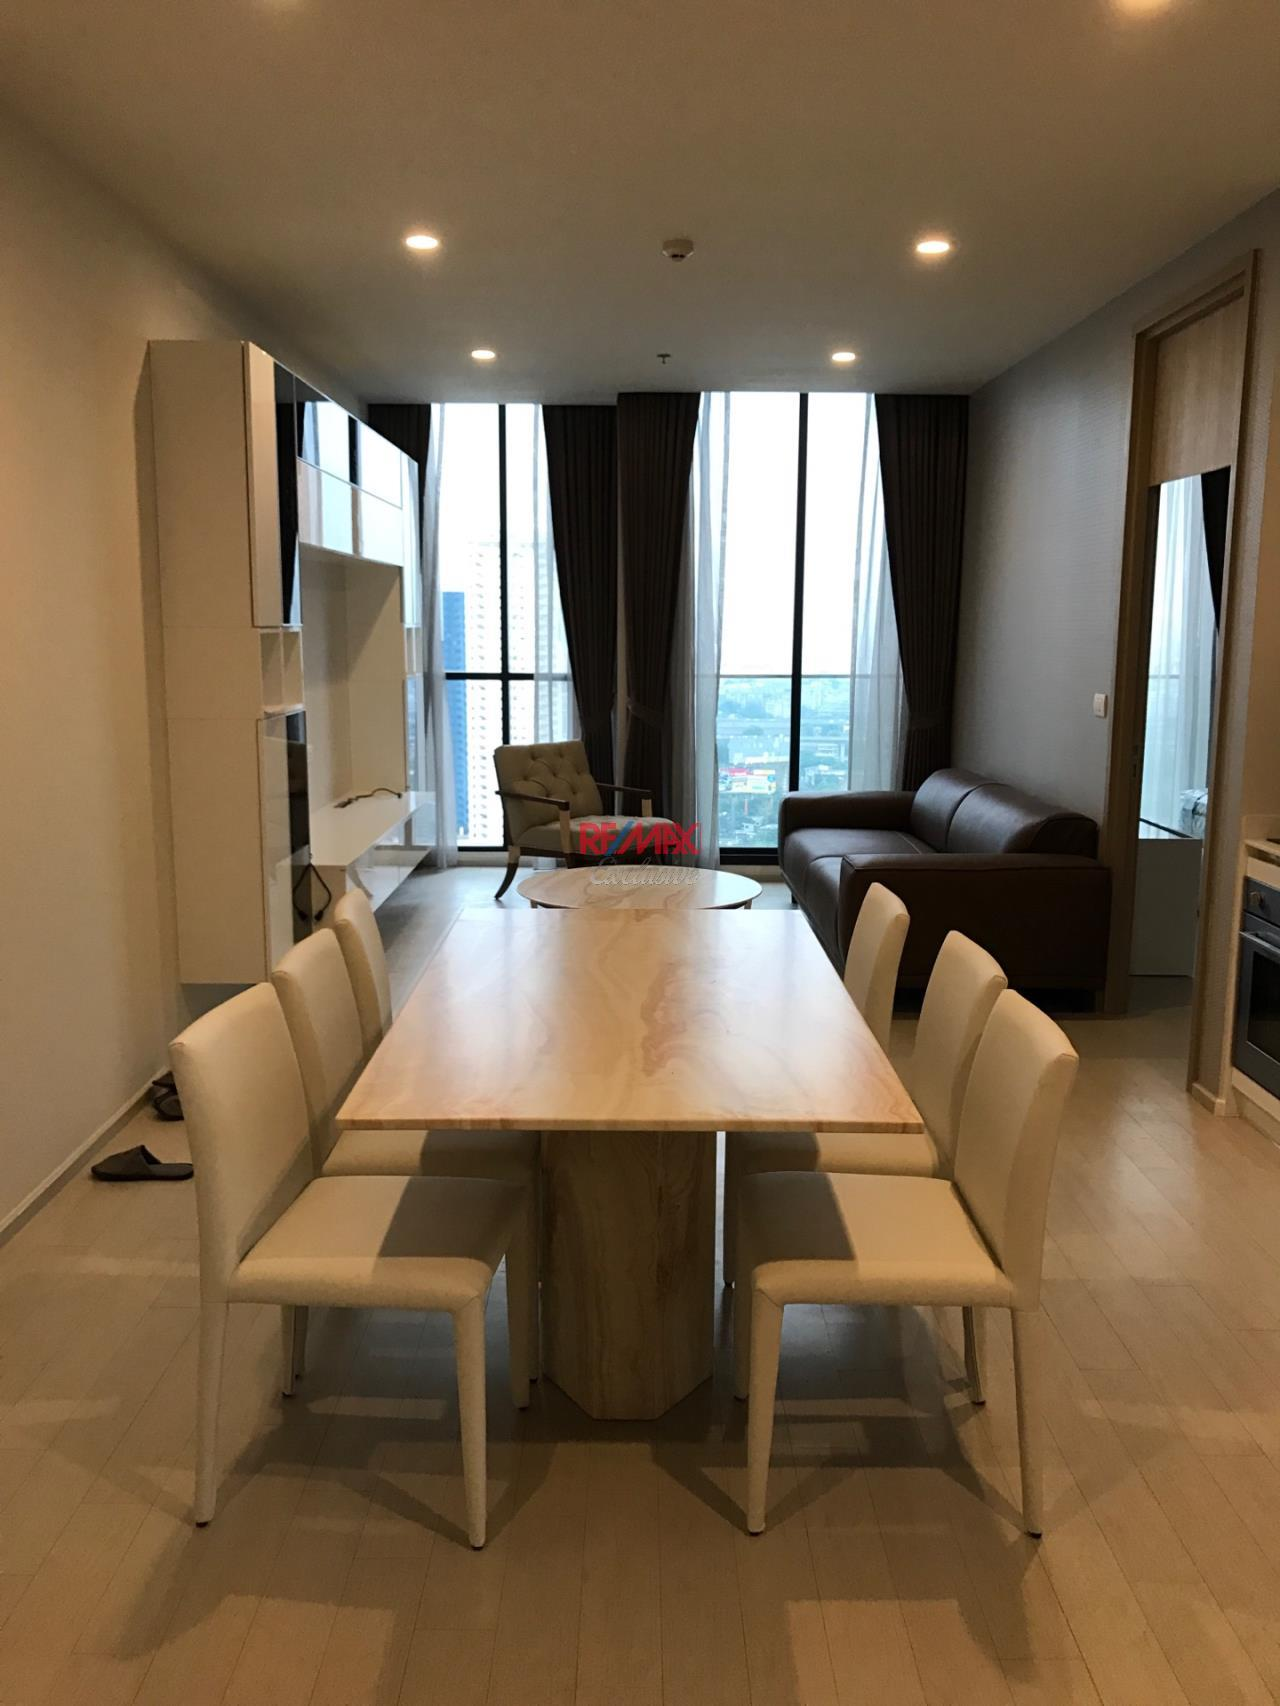 RE/MAX Exclusive Agency's Noble Ploenchit 2 Bedrooms, 2 Bathrooms, 85 Sqm., For Rent and Sale!! 7